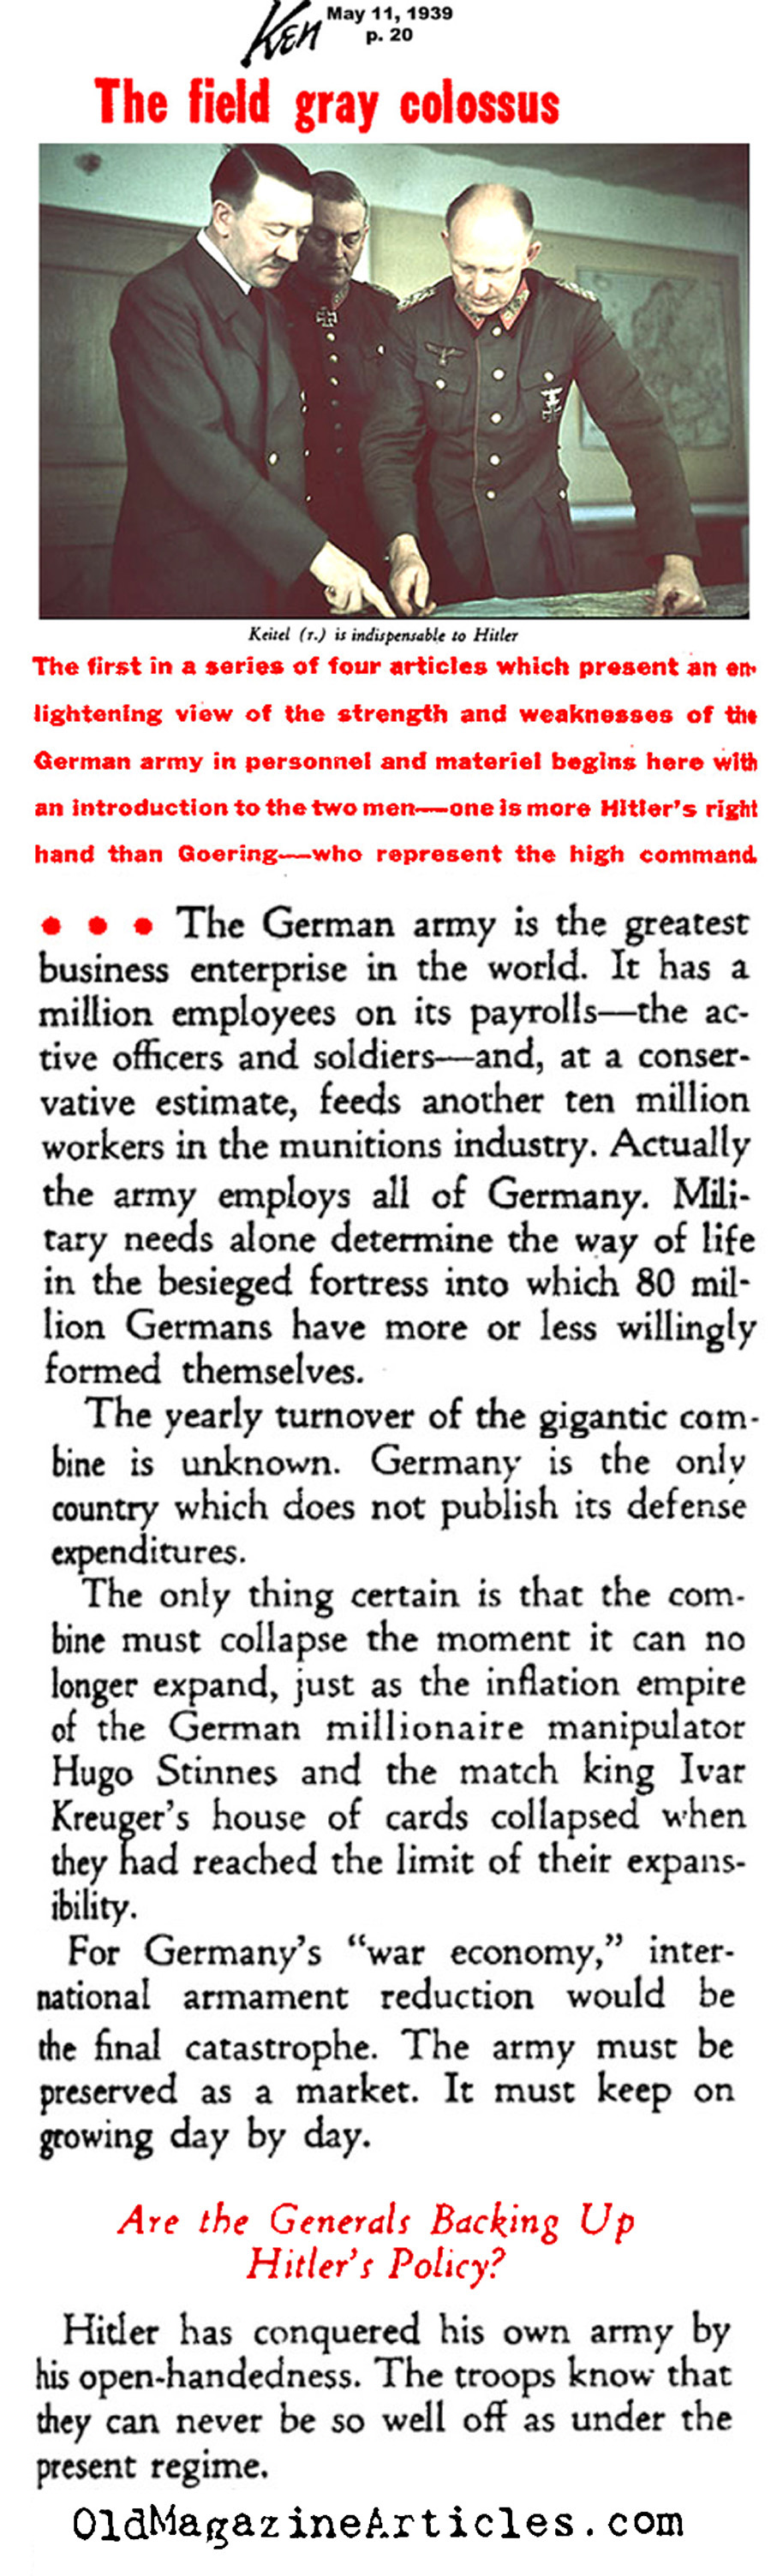 Military Buildup in Germany (Ken Magazine, 1939)